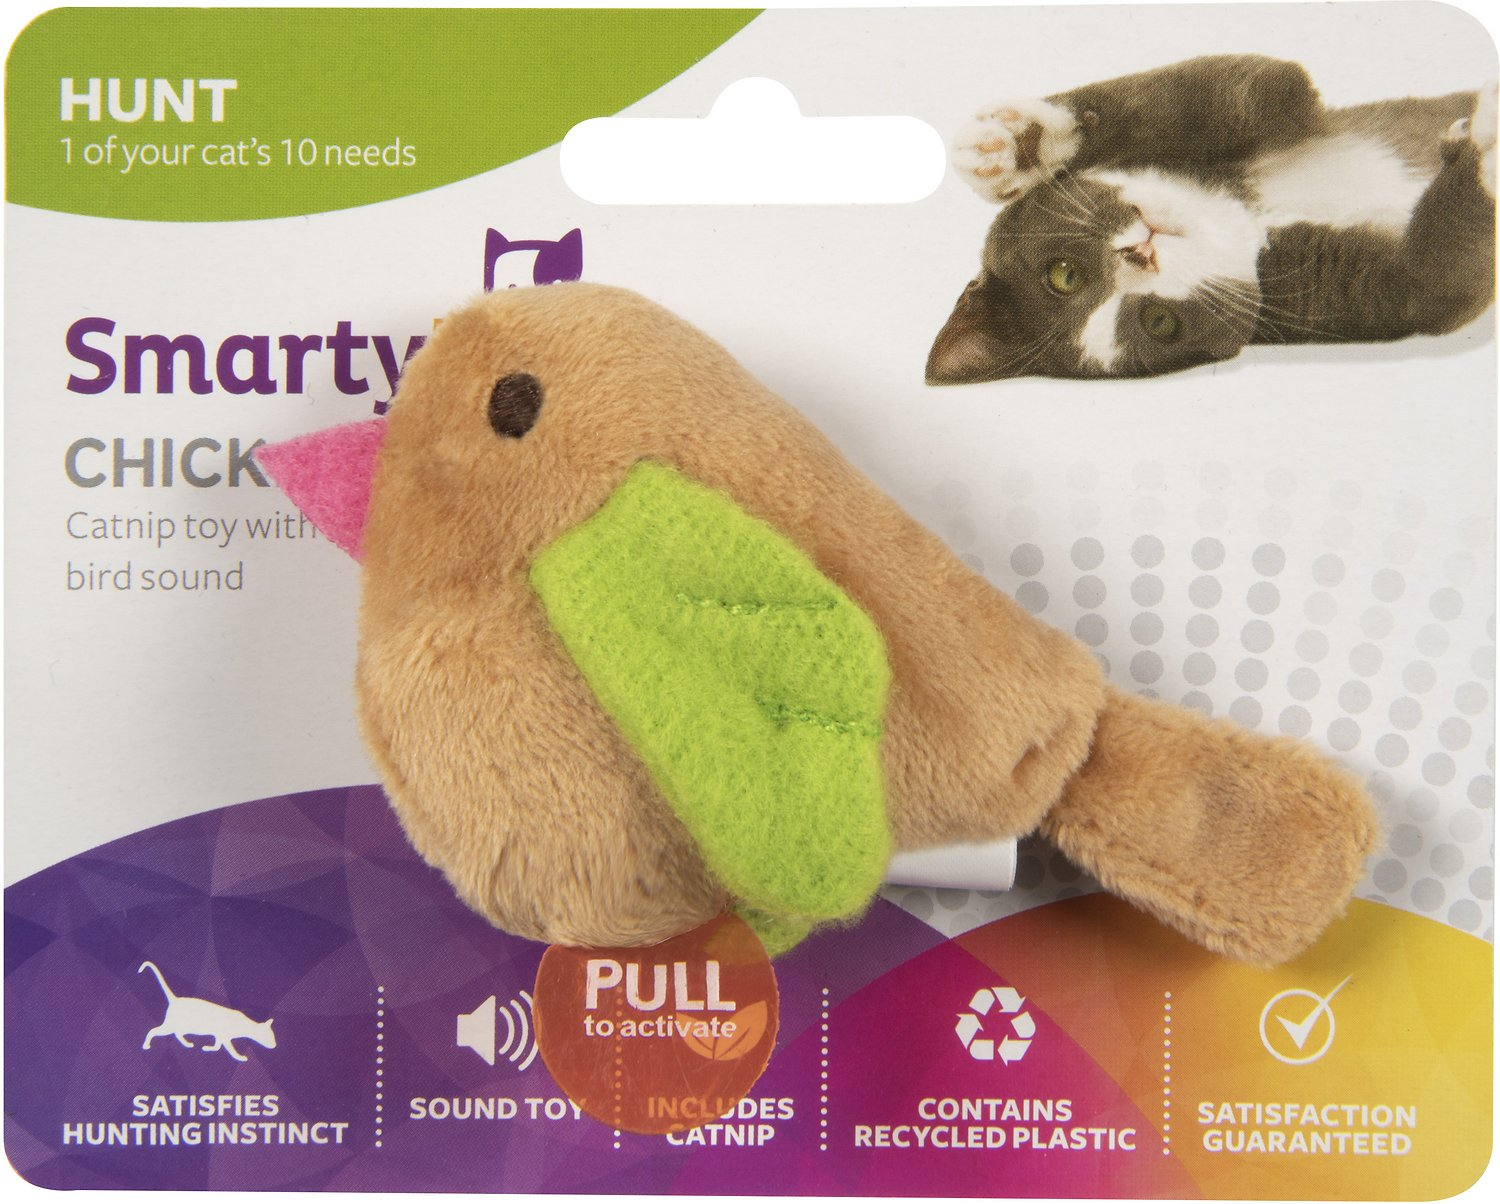 Cat Toys Free shipping at Chewy